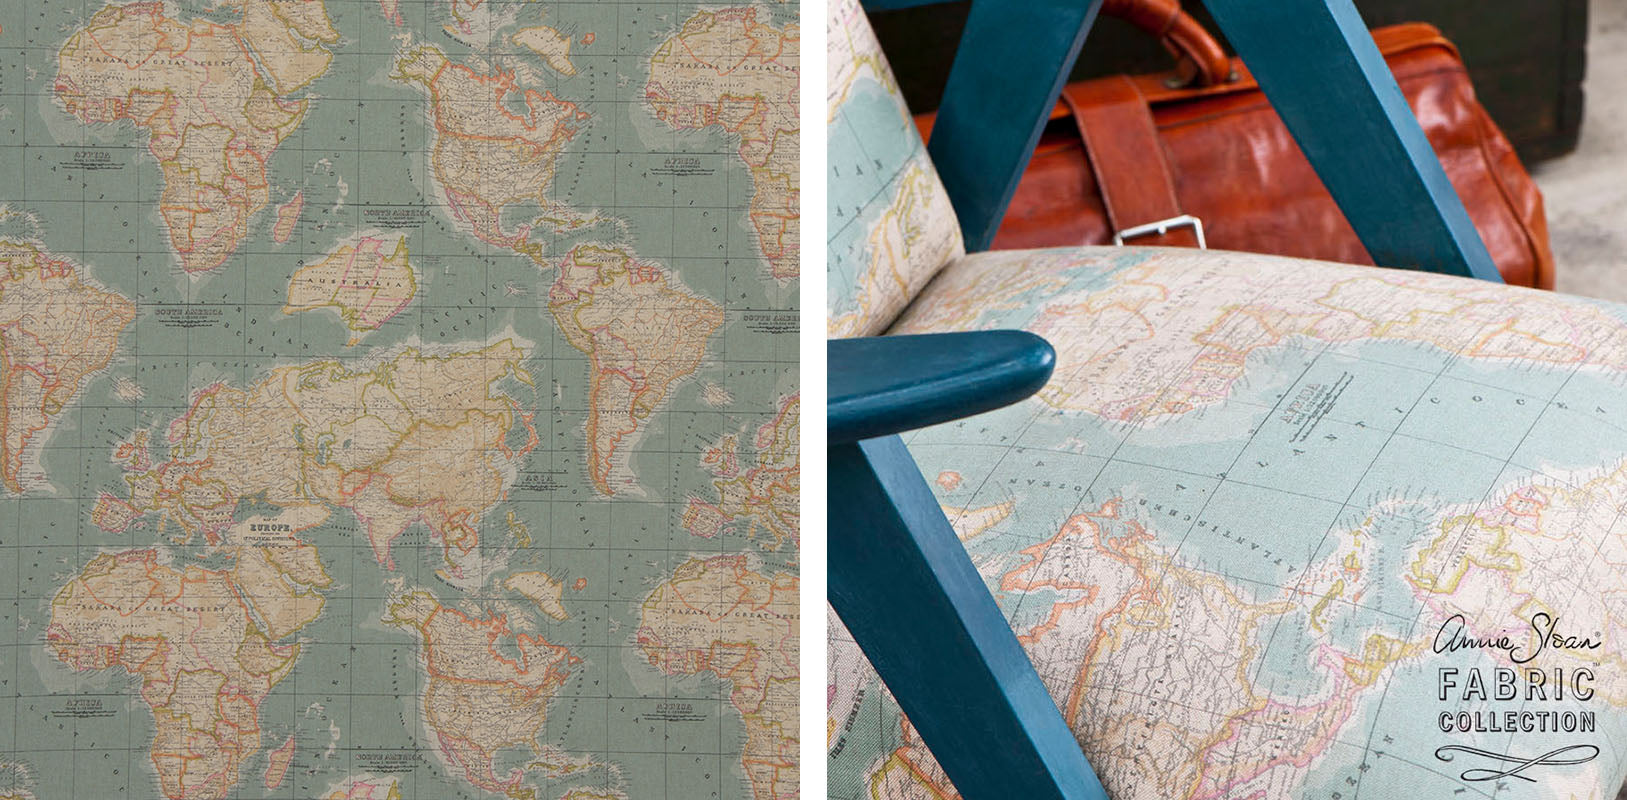 Annie Sloan Map Fabric